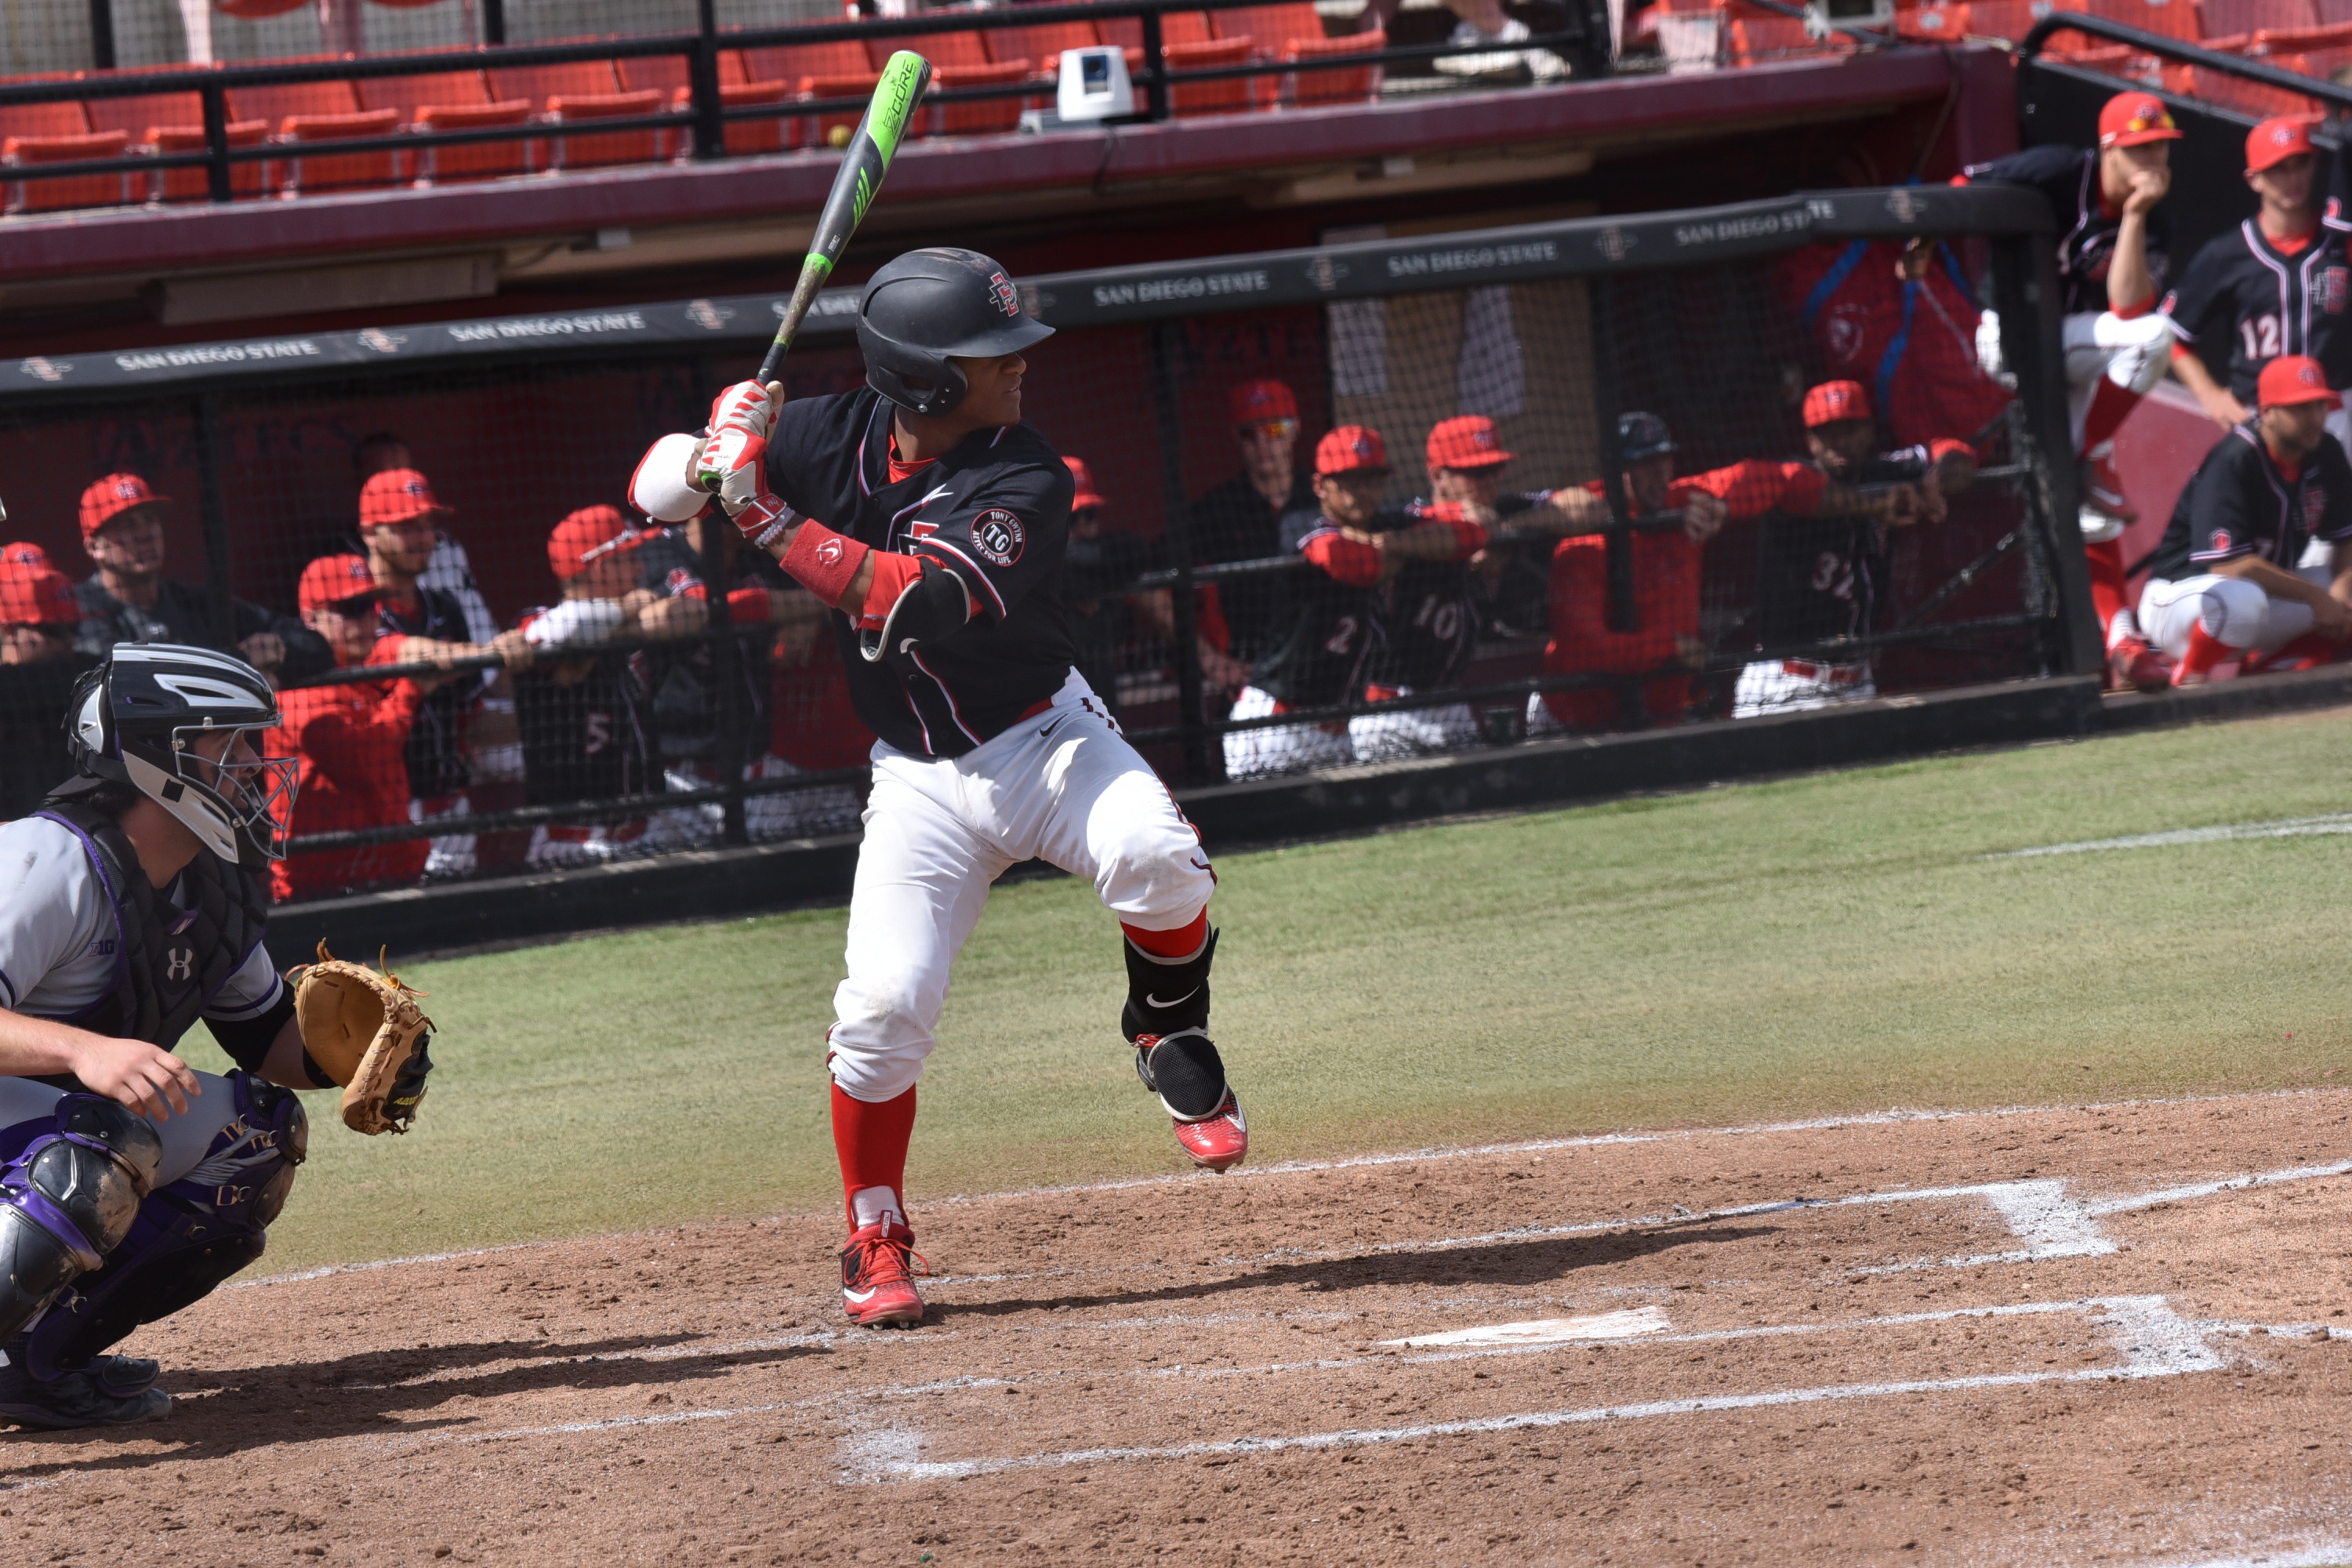 aztecs and wolf pack wrap up series this afternoon - san diego state